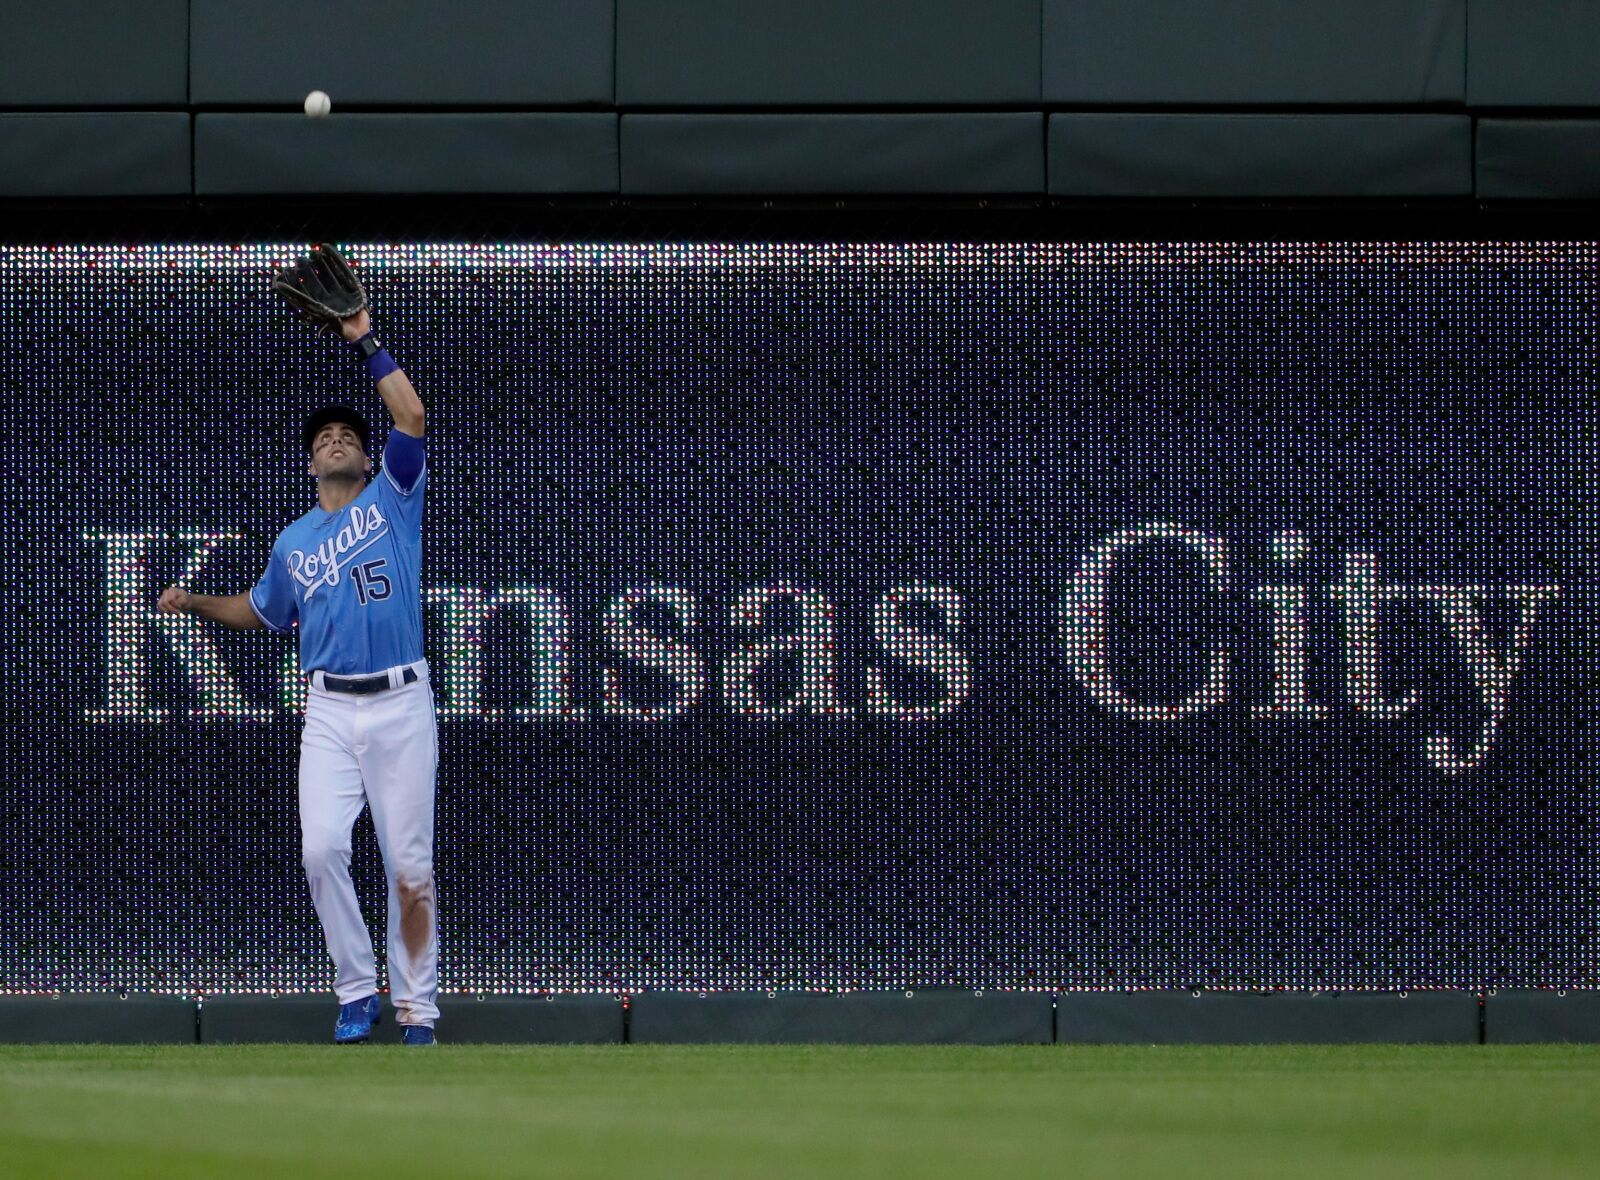 Kansas City Royals: Time for Whit Merrifield to settle into one position